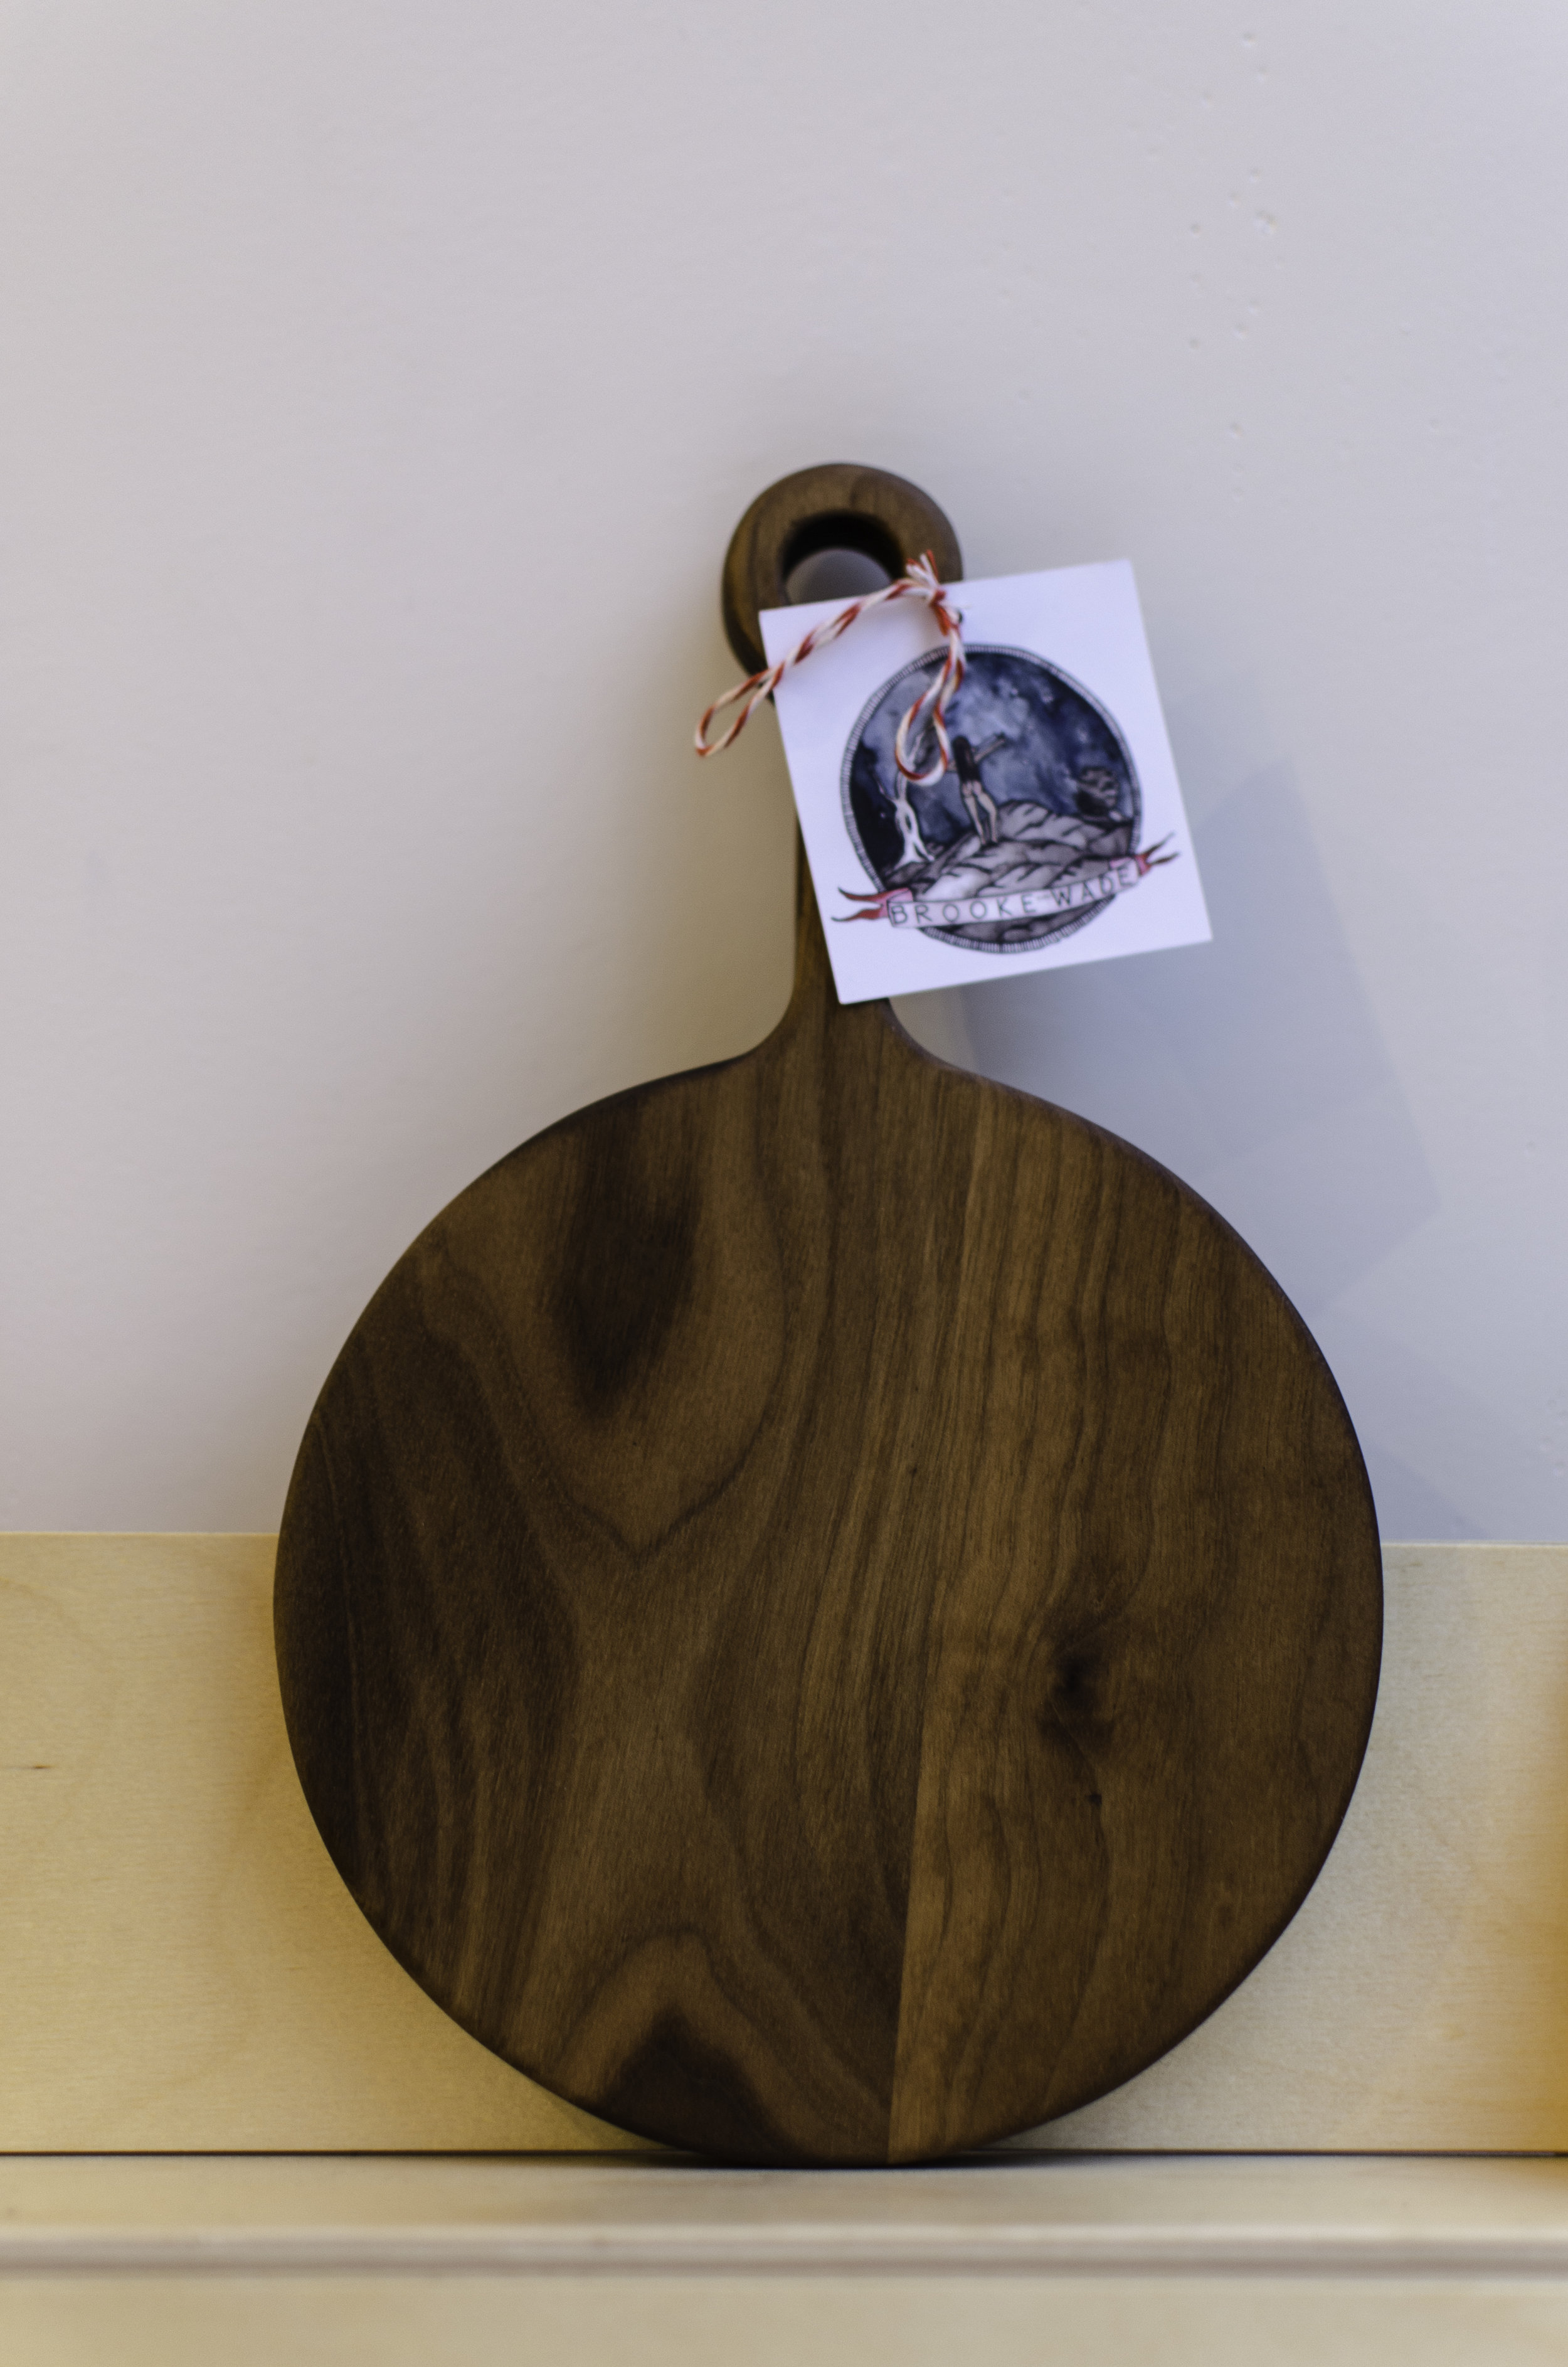 Brooke Wade Serving Board - I would give this to any of my girlfriends that like entertaining. I am always down for a good cheese selection and I tend to hang out with fellow cheese friends.